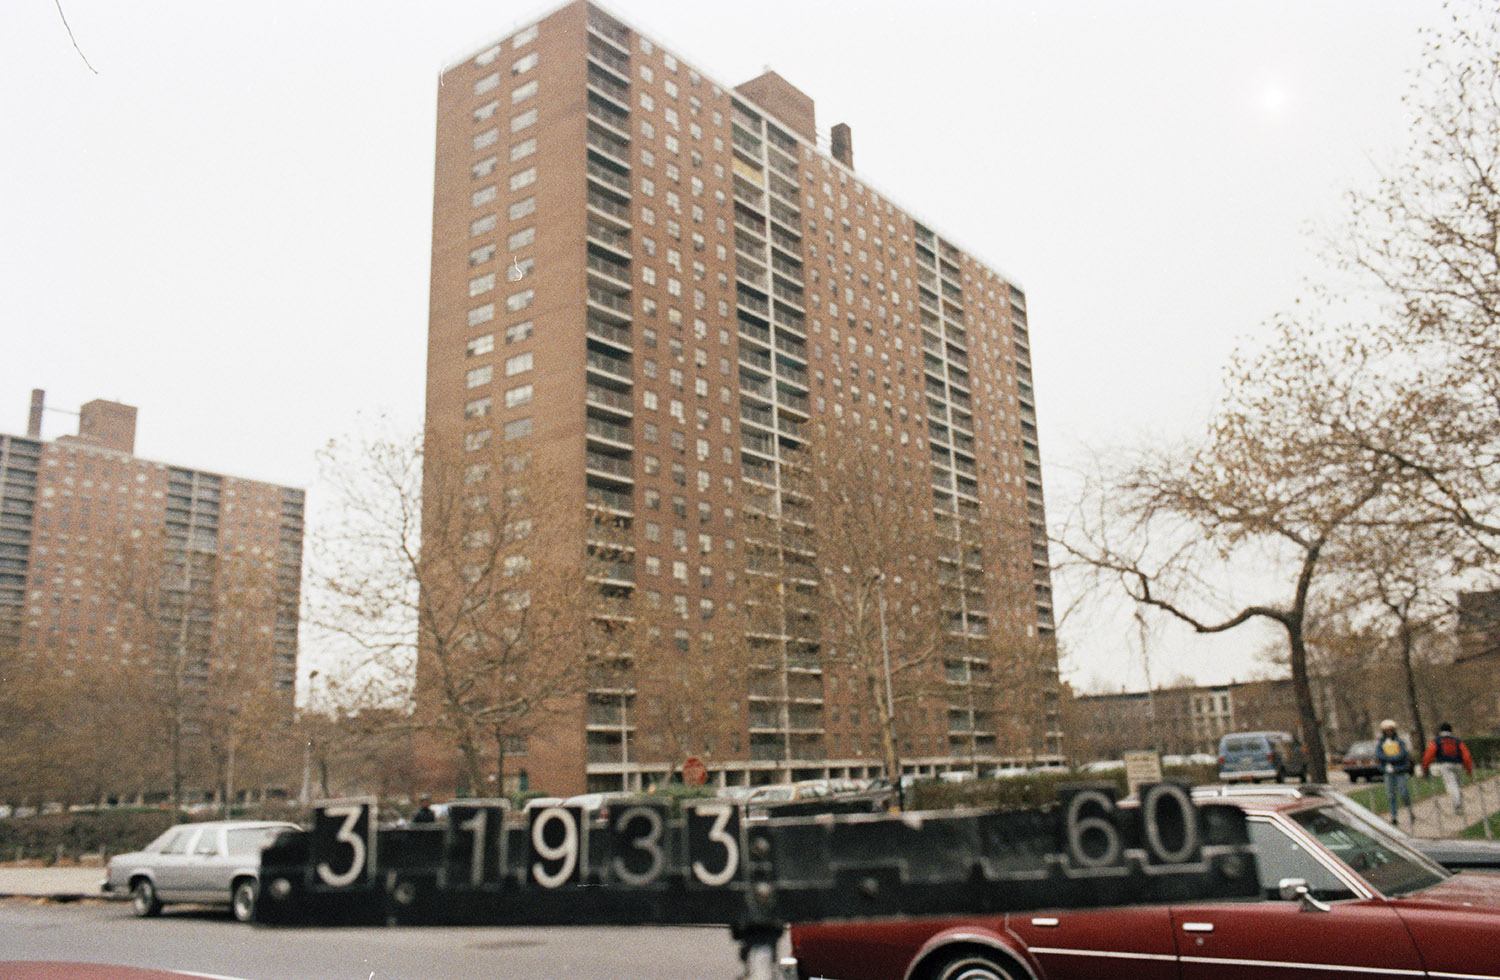 309 Lafayette Ave., mid-1980s. Photo: Department of Finance collection, NYC Municipal Archives.